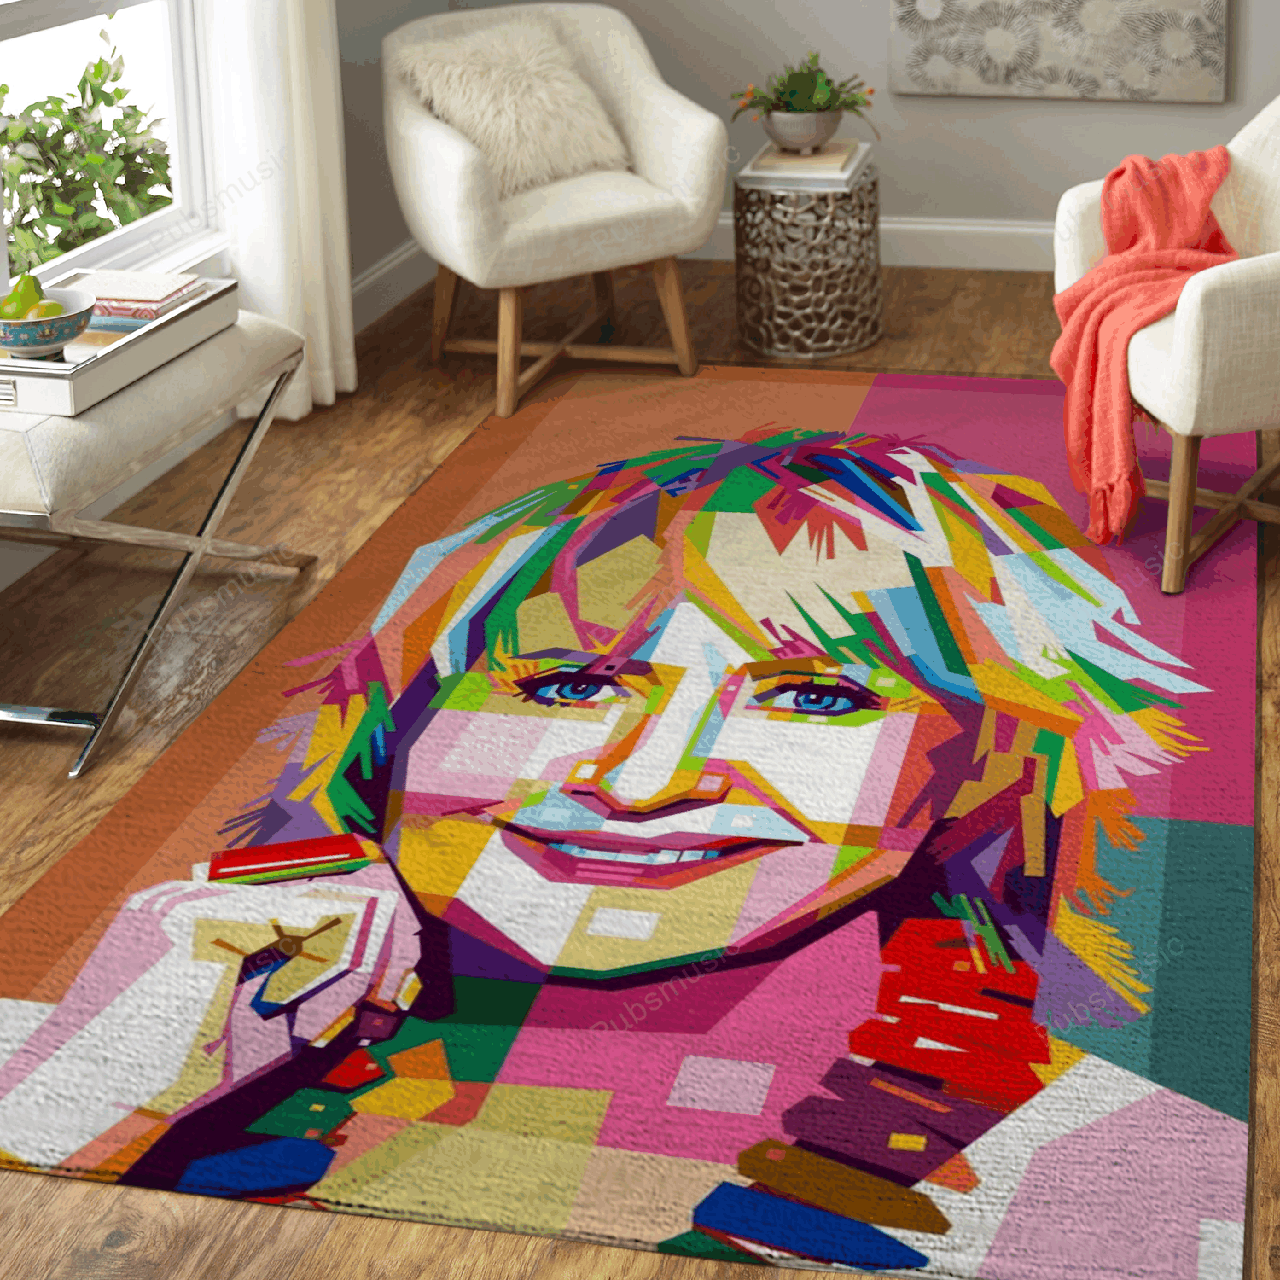 Lulu - Music Art For Fans Area Rug Living Room Carpet Floor Decor